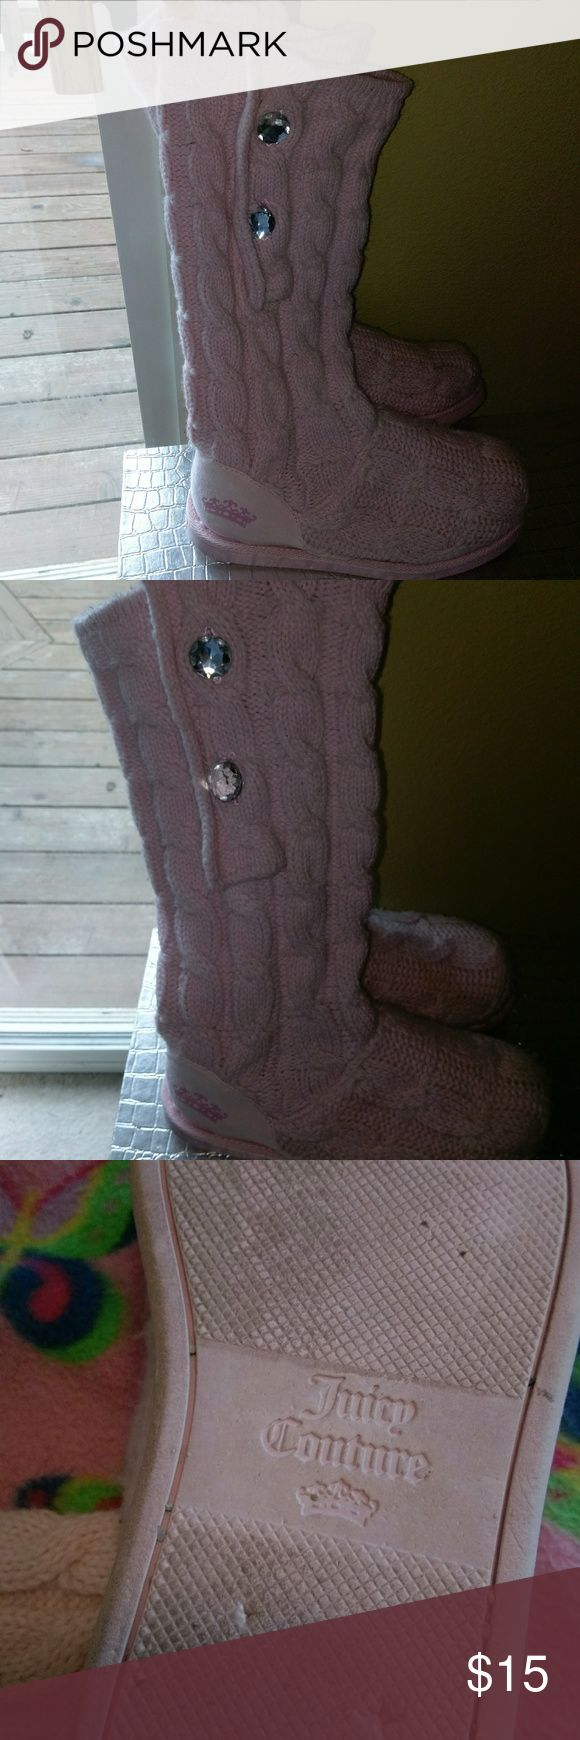 Juicy Couture Boots Juicy Couture winter boots. Worn many times but still in great condition. No ware really. Super cute for winter! Juicy Couture Shoes